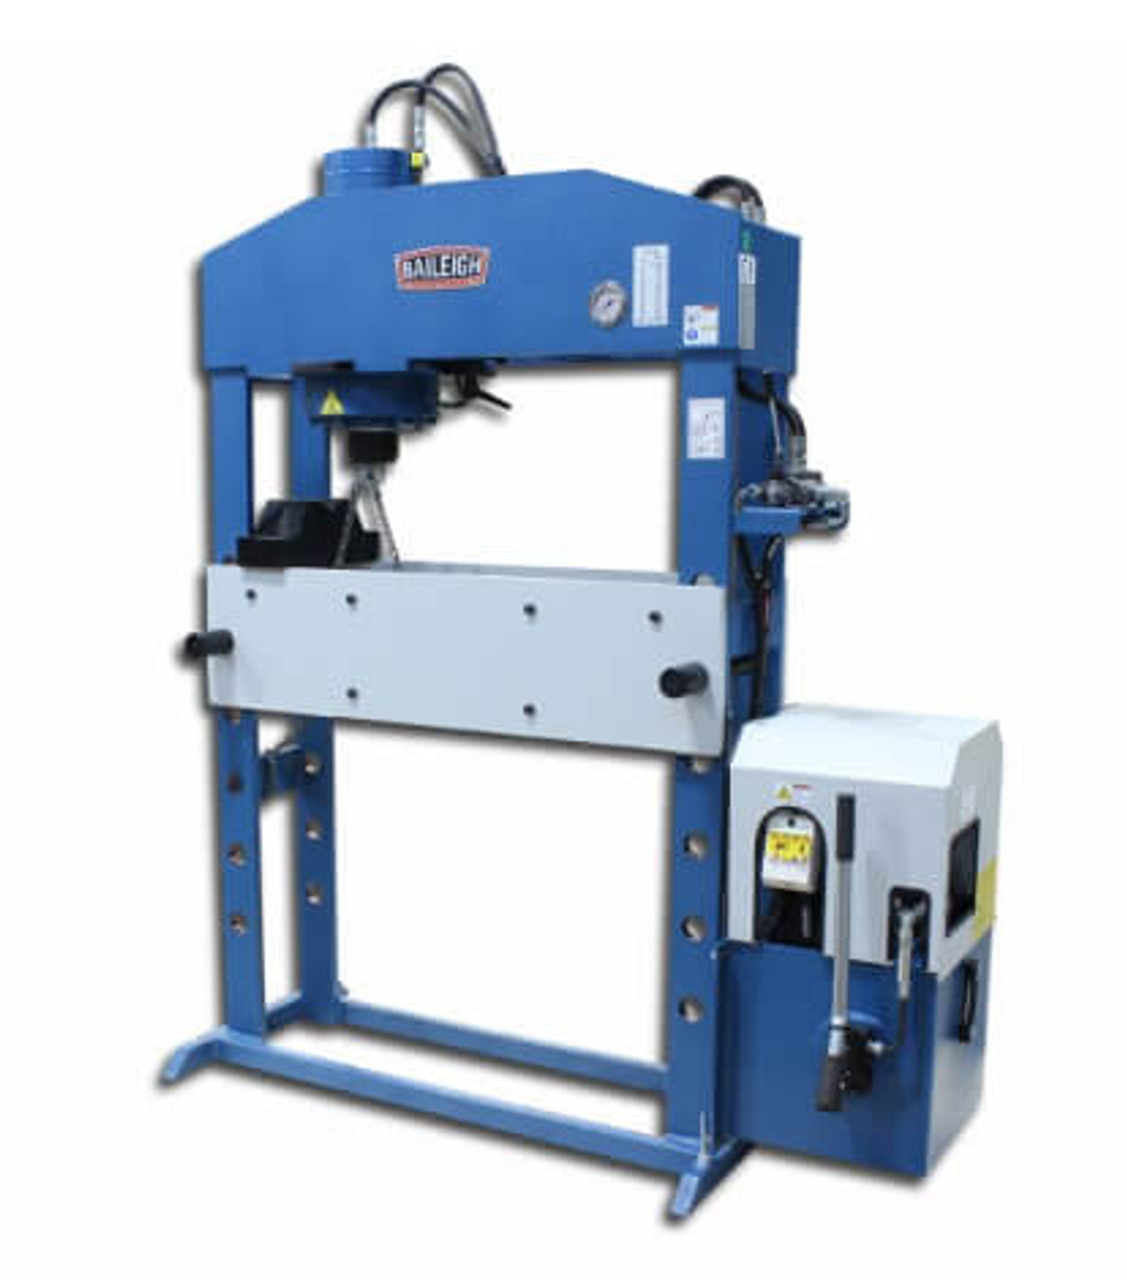 Baileigh Industrial HSP-66M-HD 66 Ton Electric/Hydraulic Shop Press | 9 85